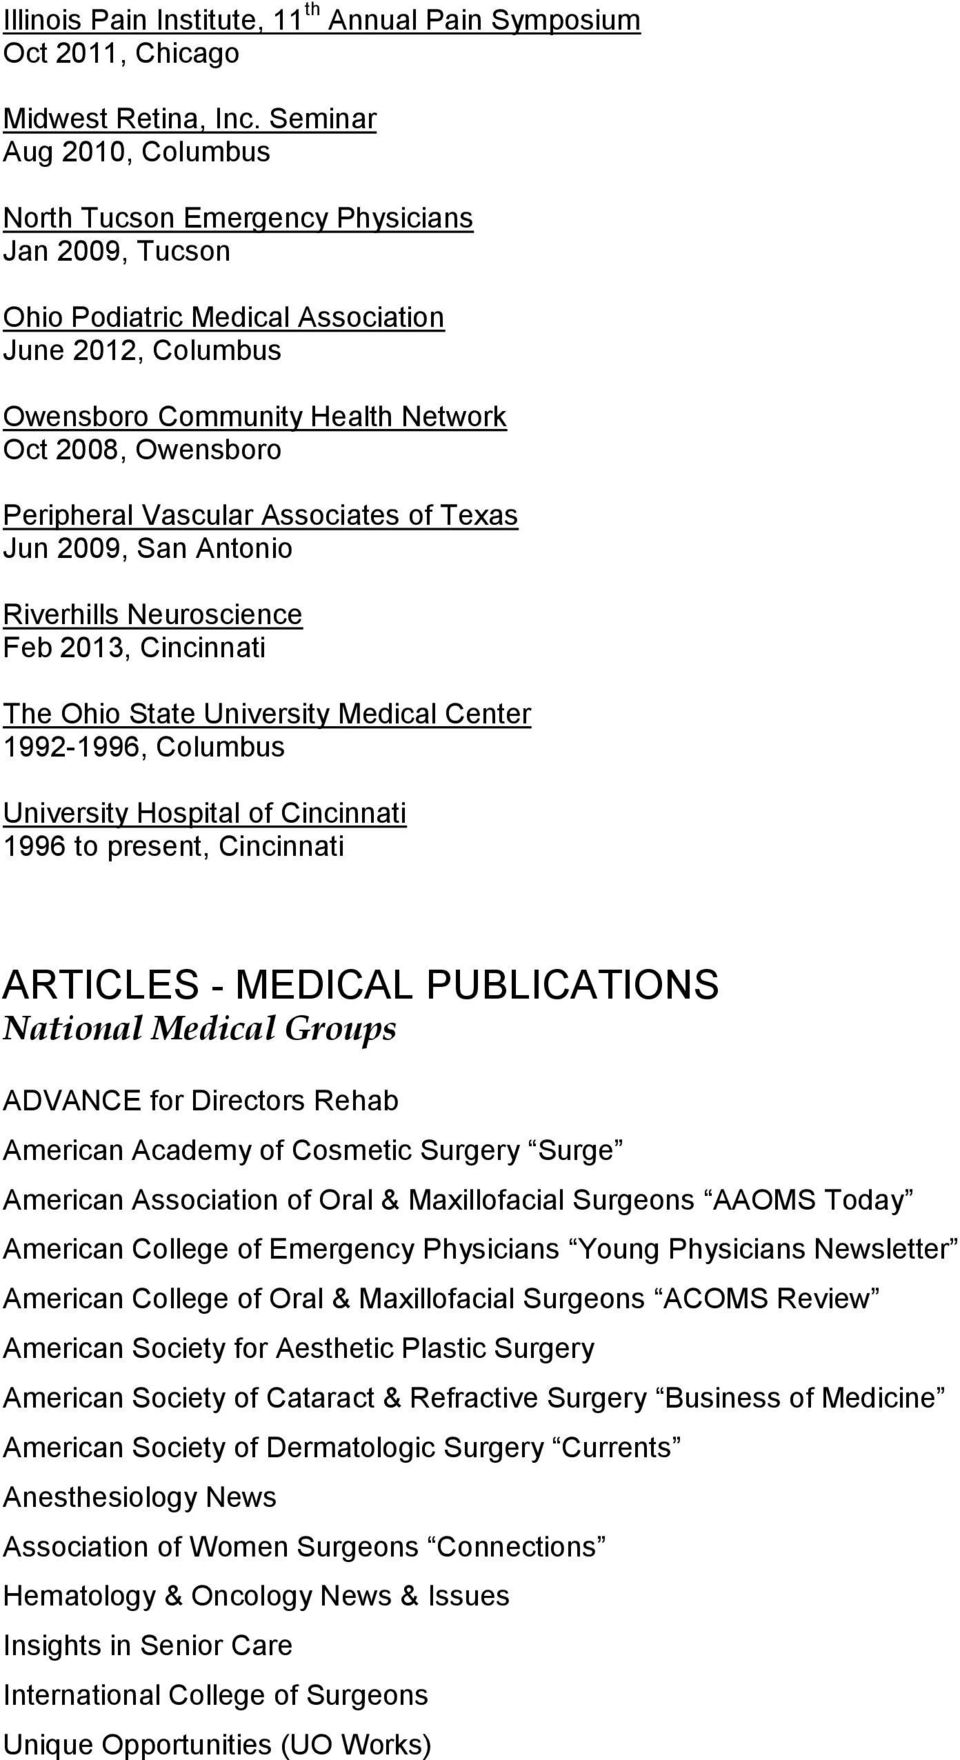 Vascular Associates of Texas Jun 2009, San Antonio Riverhills Neuroscience Feb 2013, Cincinnati The Ohio State University Medical Center 1992-1996, Columbus University Hospital of Cincinnati 1996 to